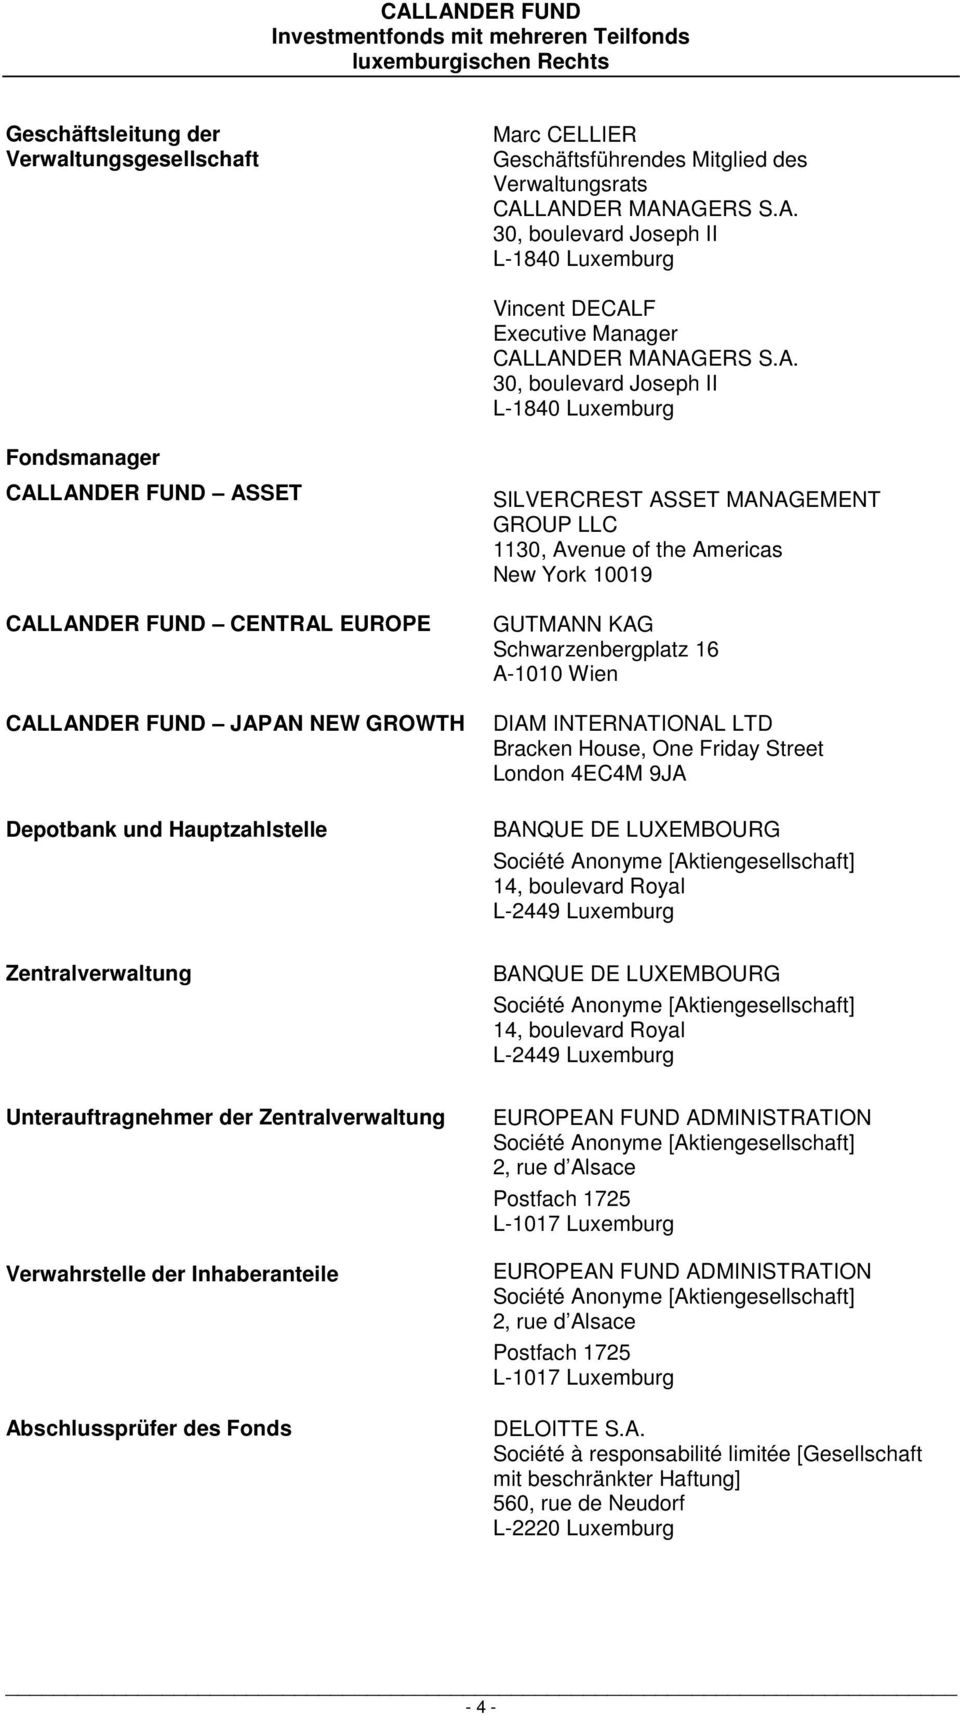 Besteuerung investmentfonds luxembourg royal family darban investments limited